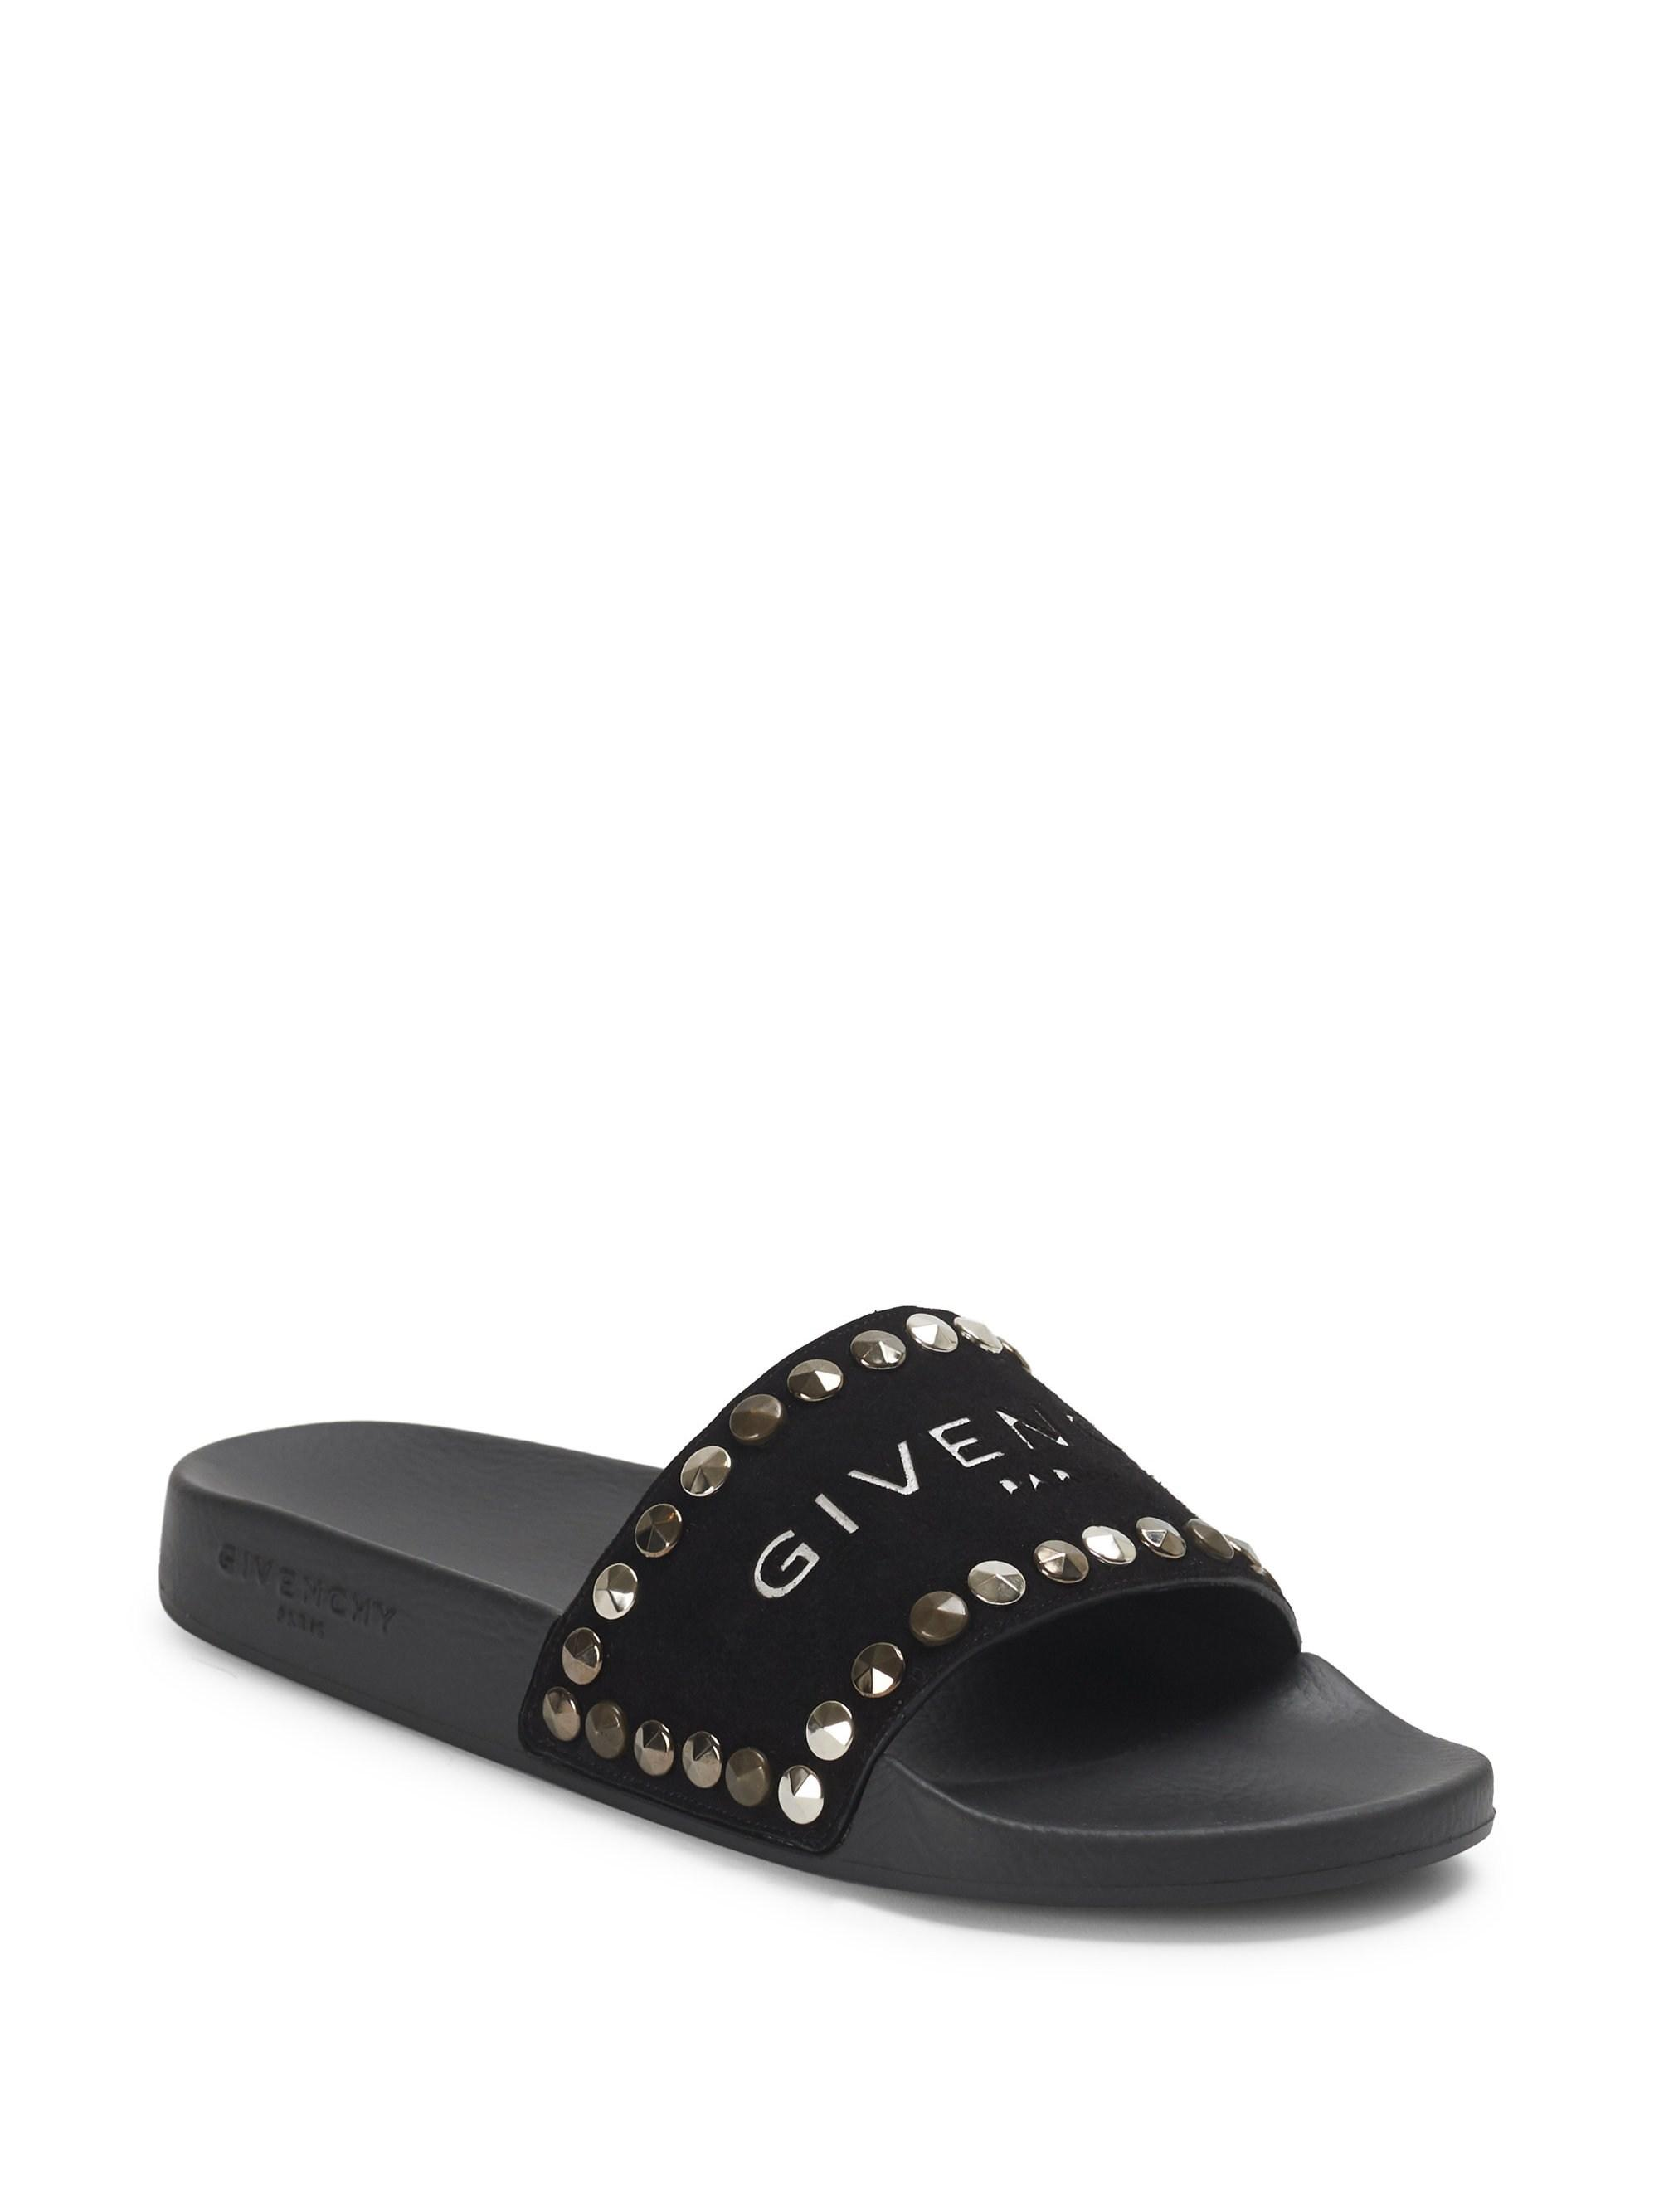 b7515e5dfe02 Lyst - Givenchy Rubber And Suede Slides in Black - Save 54%